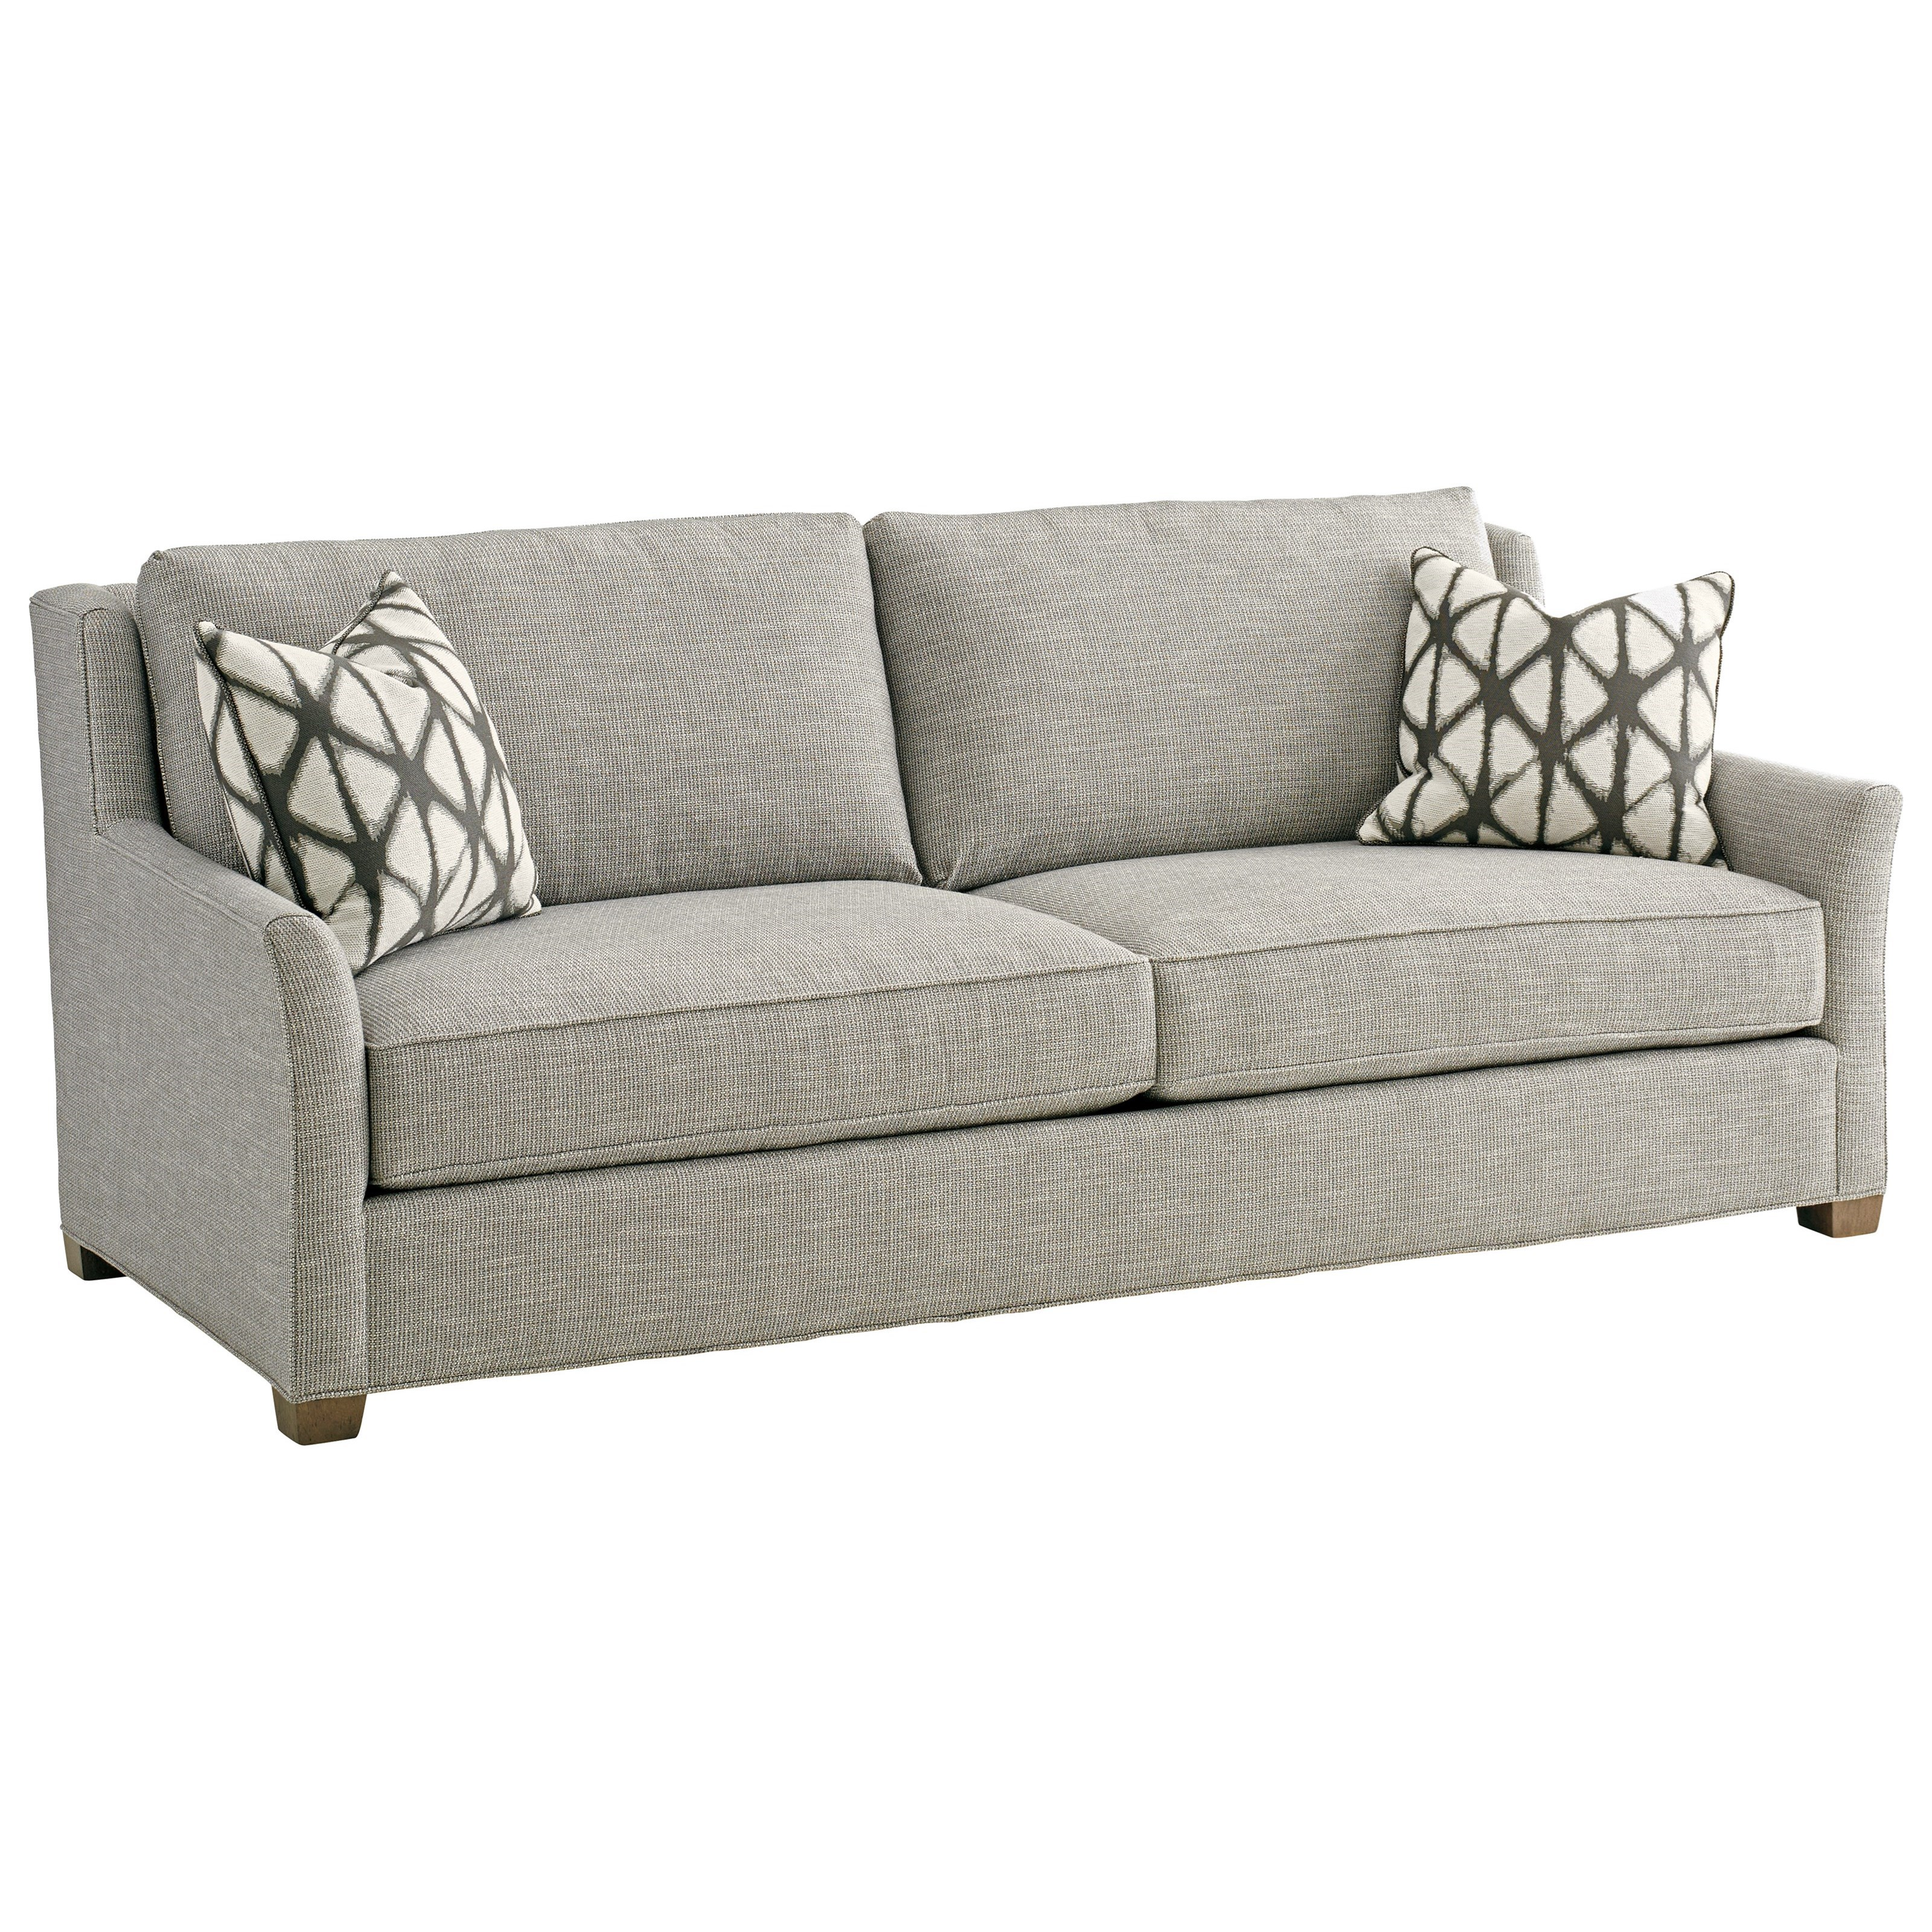 Cypress Point Felton Sofa by Tommy Bahama Home at Baer's Furniture